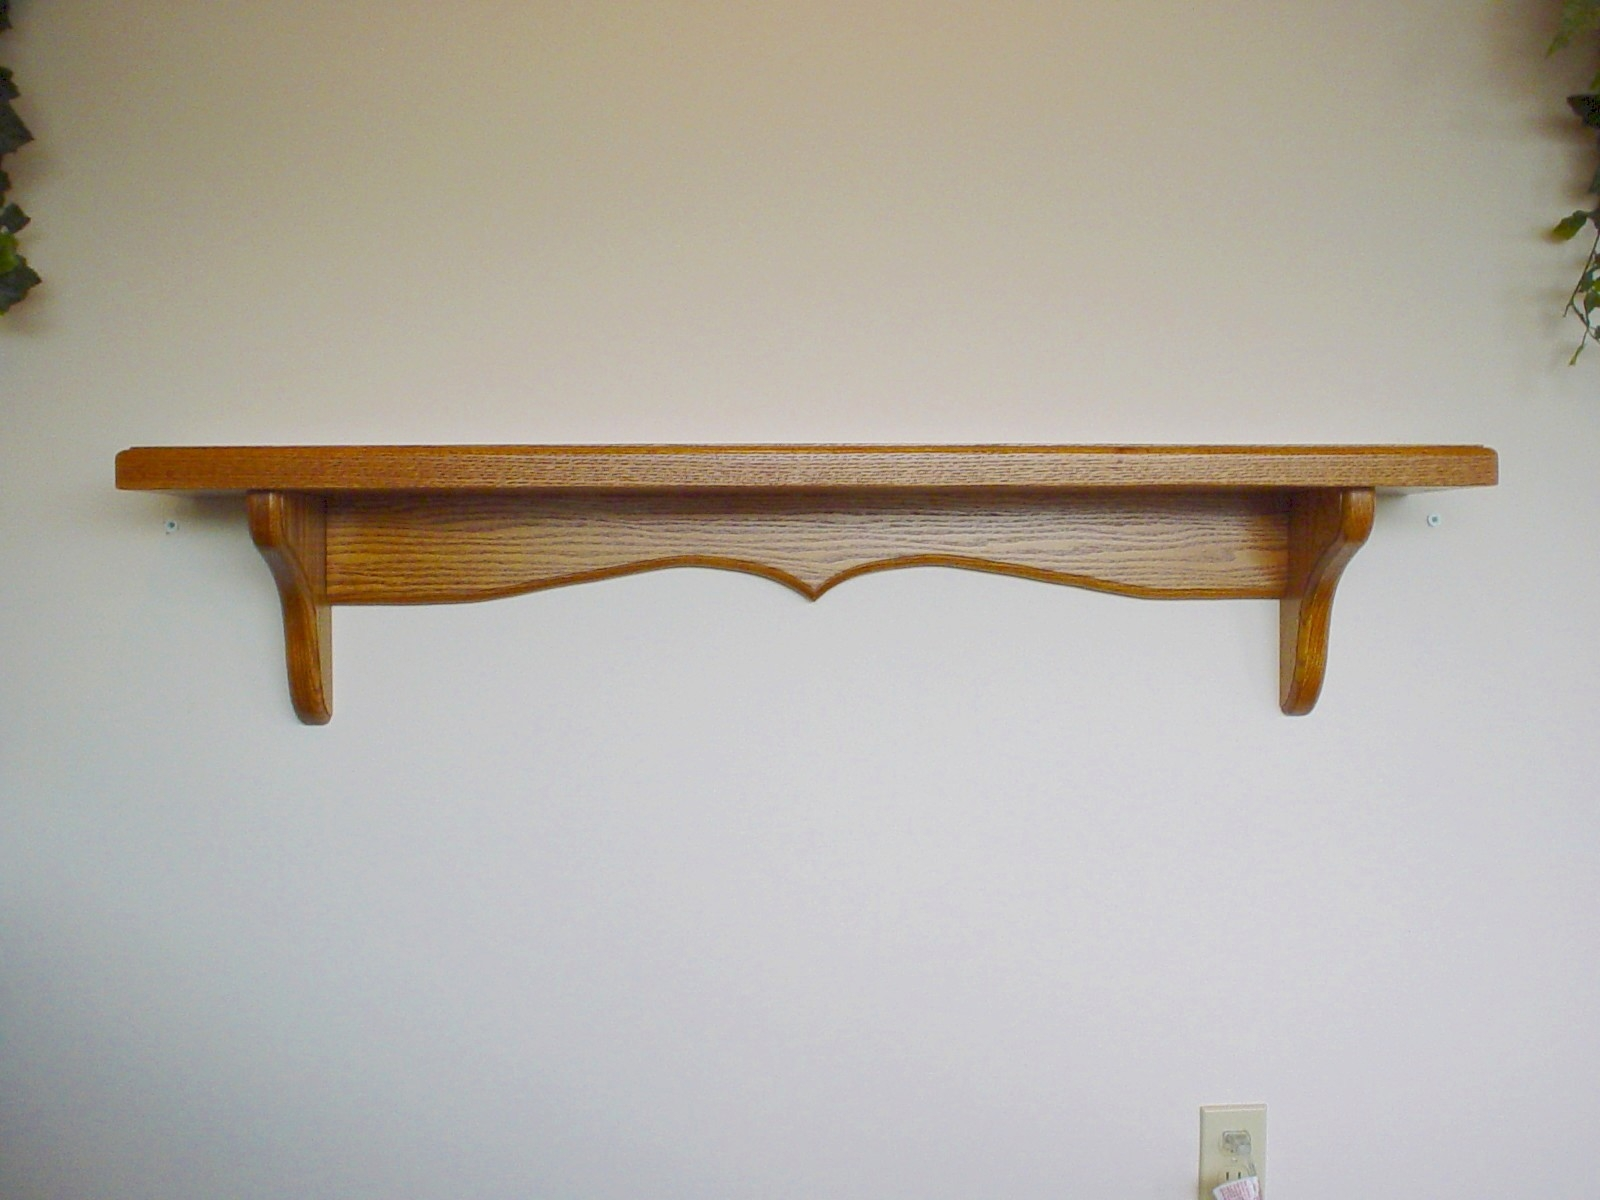 Wall Shelf Brackets Are Perfect Options Why Home Decorations With Wall Shelf (Image 10 of 15)